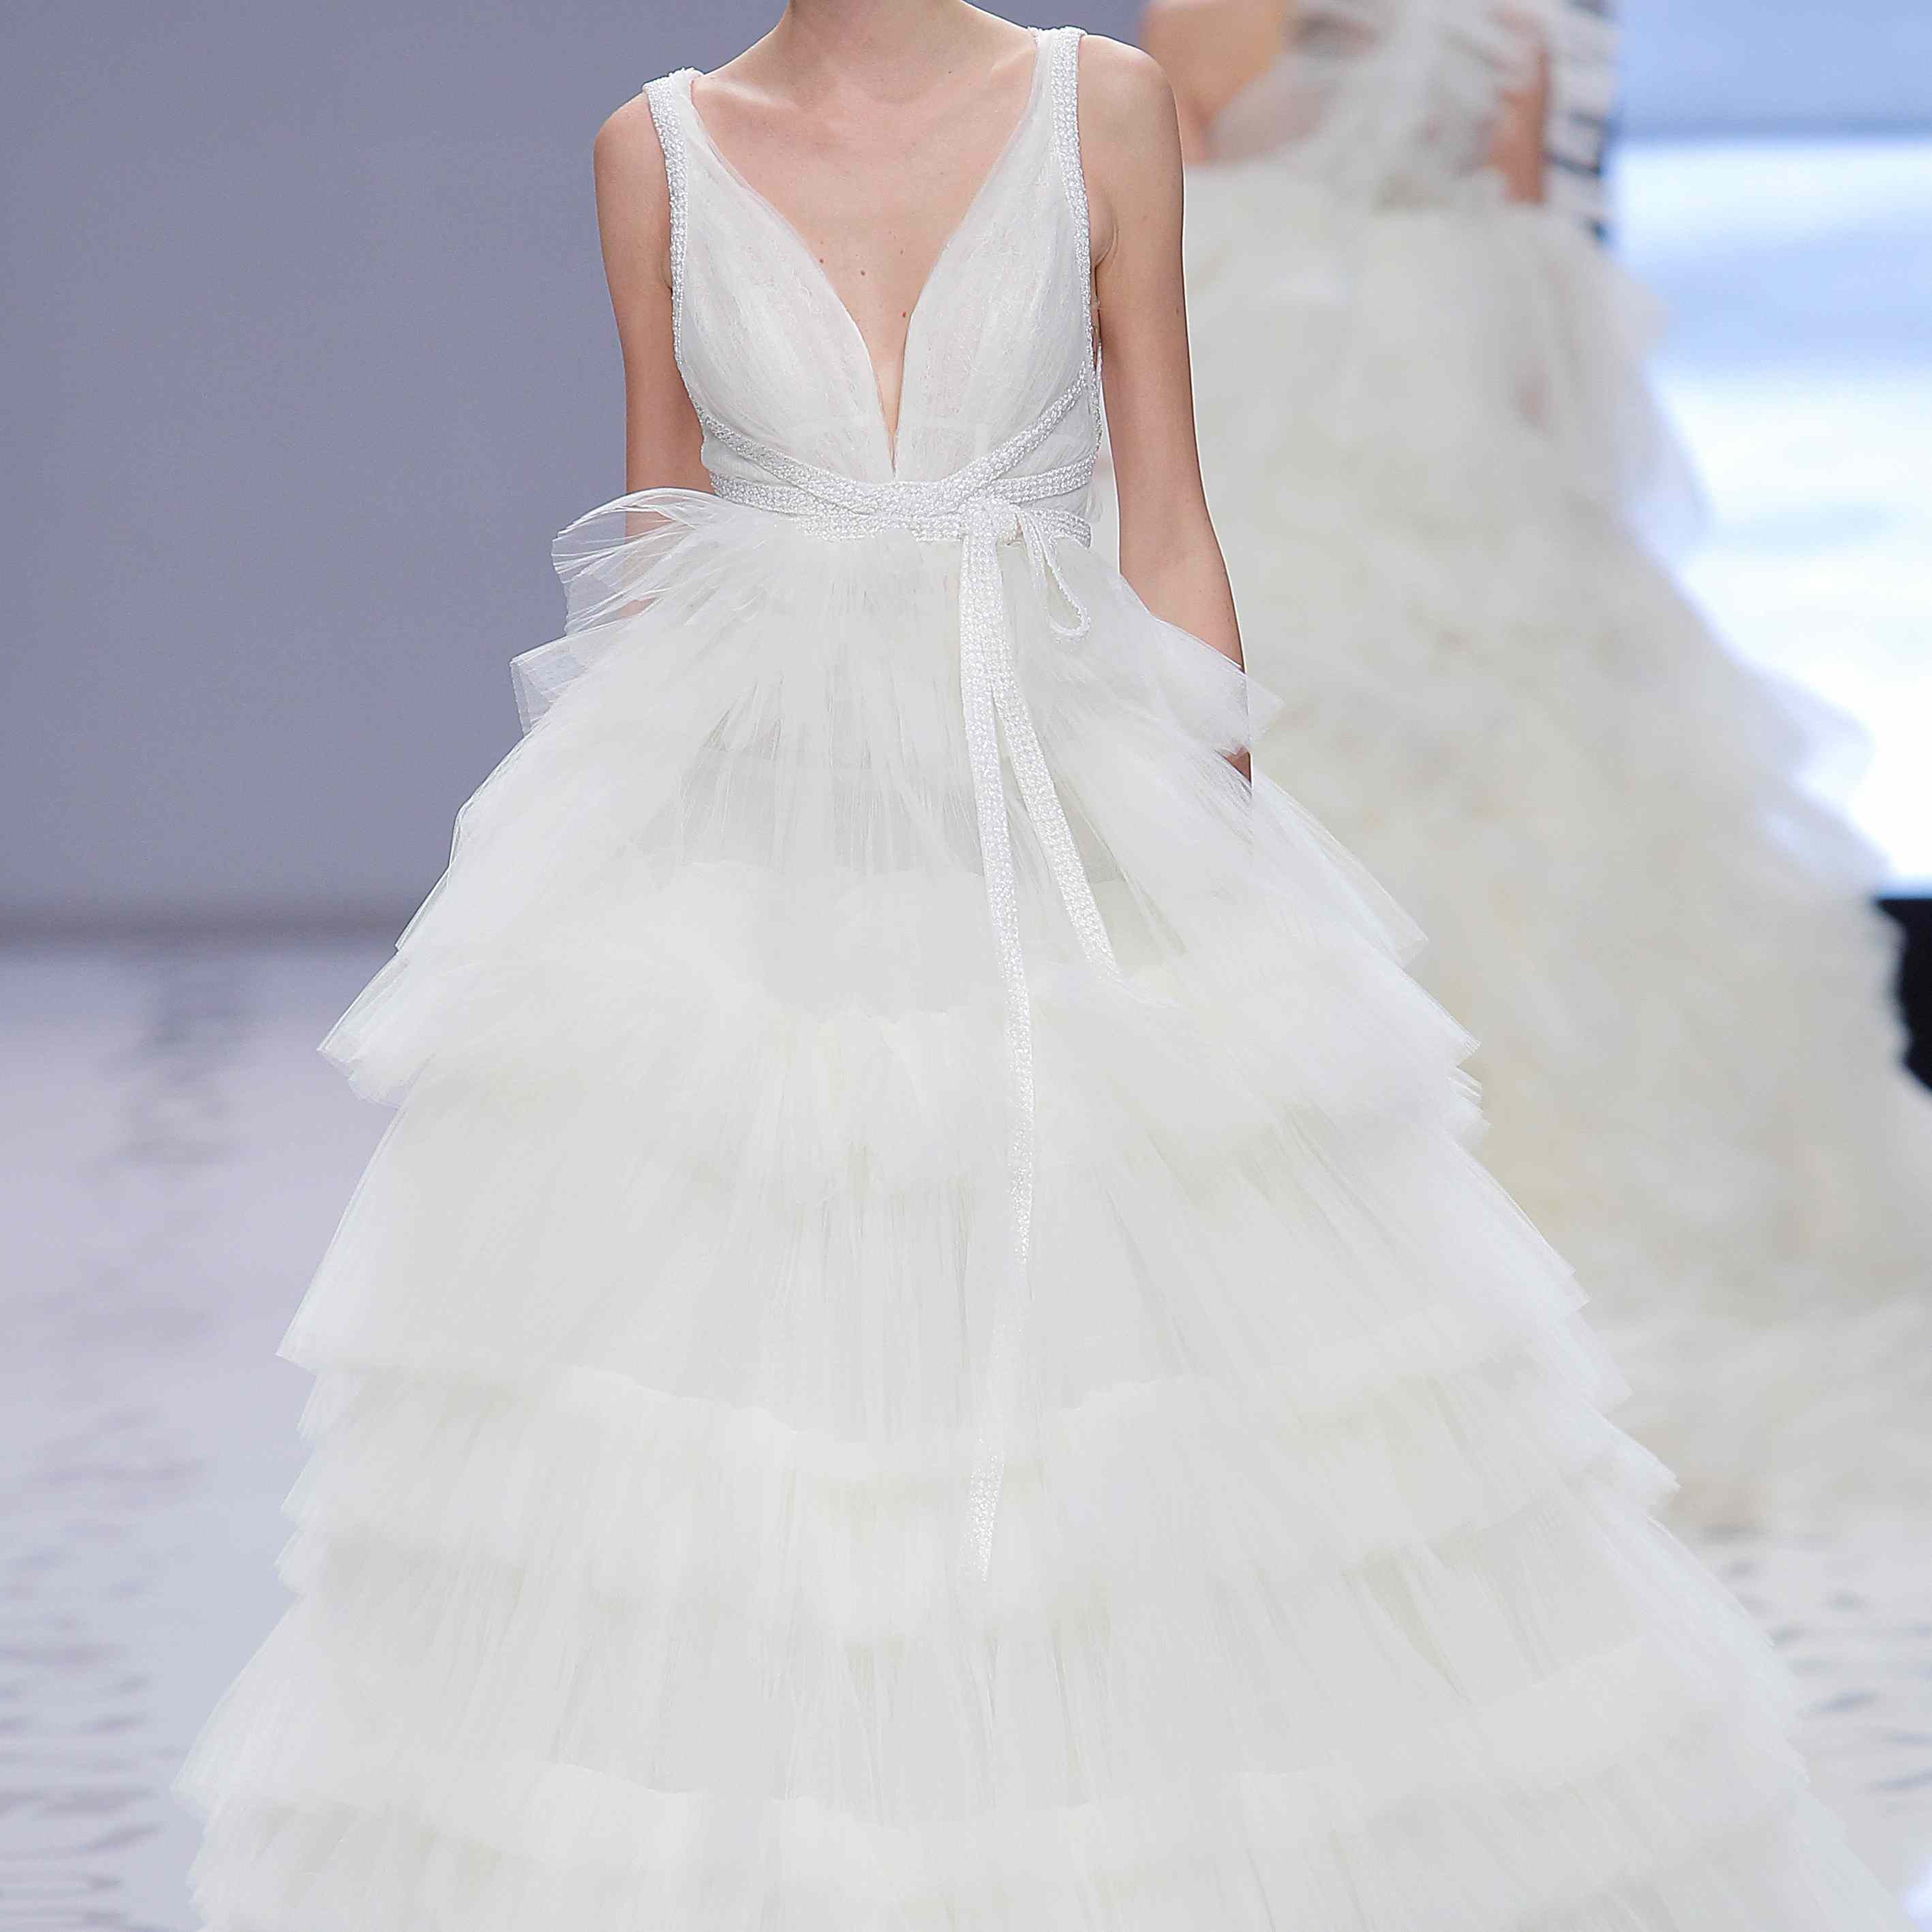 Model in a pleated tulle princess dress with a voluminous ruffle skirt, rhinestone belt, and deep V-neck bodice